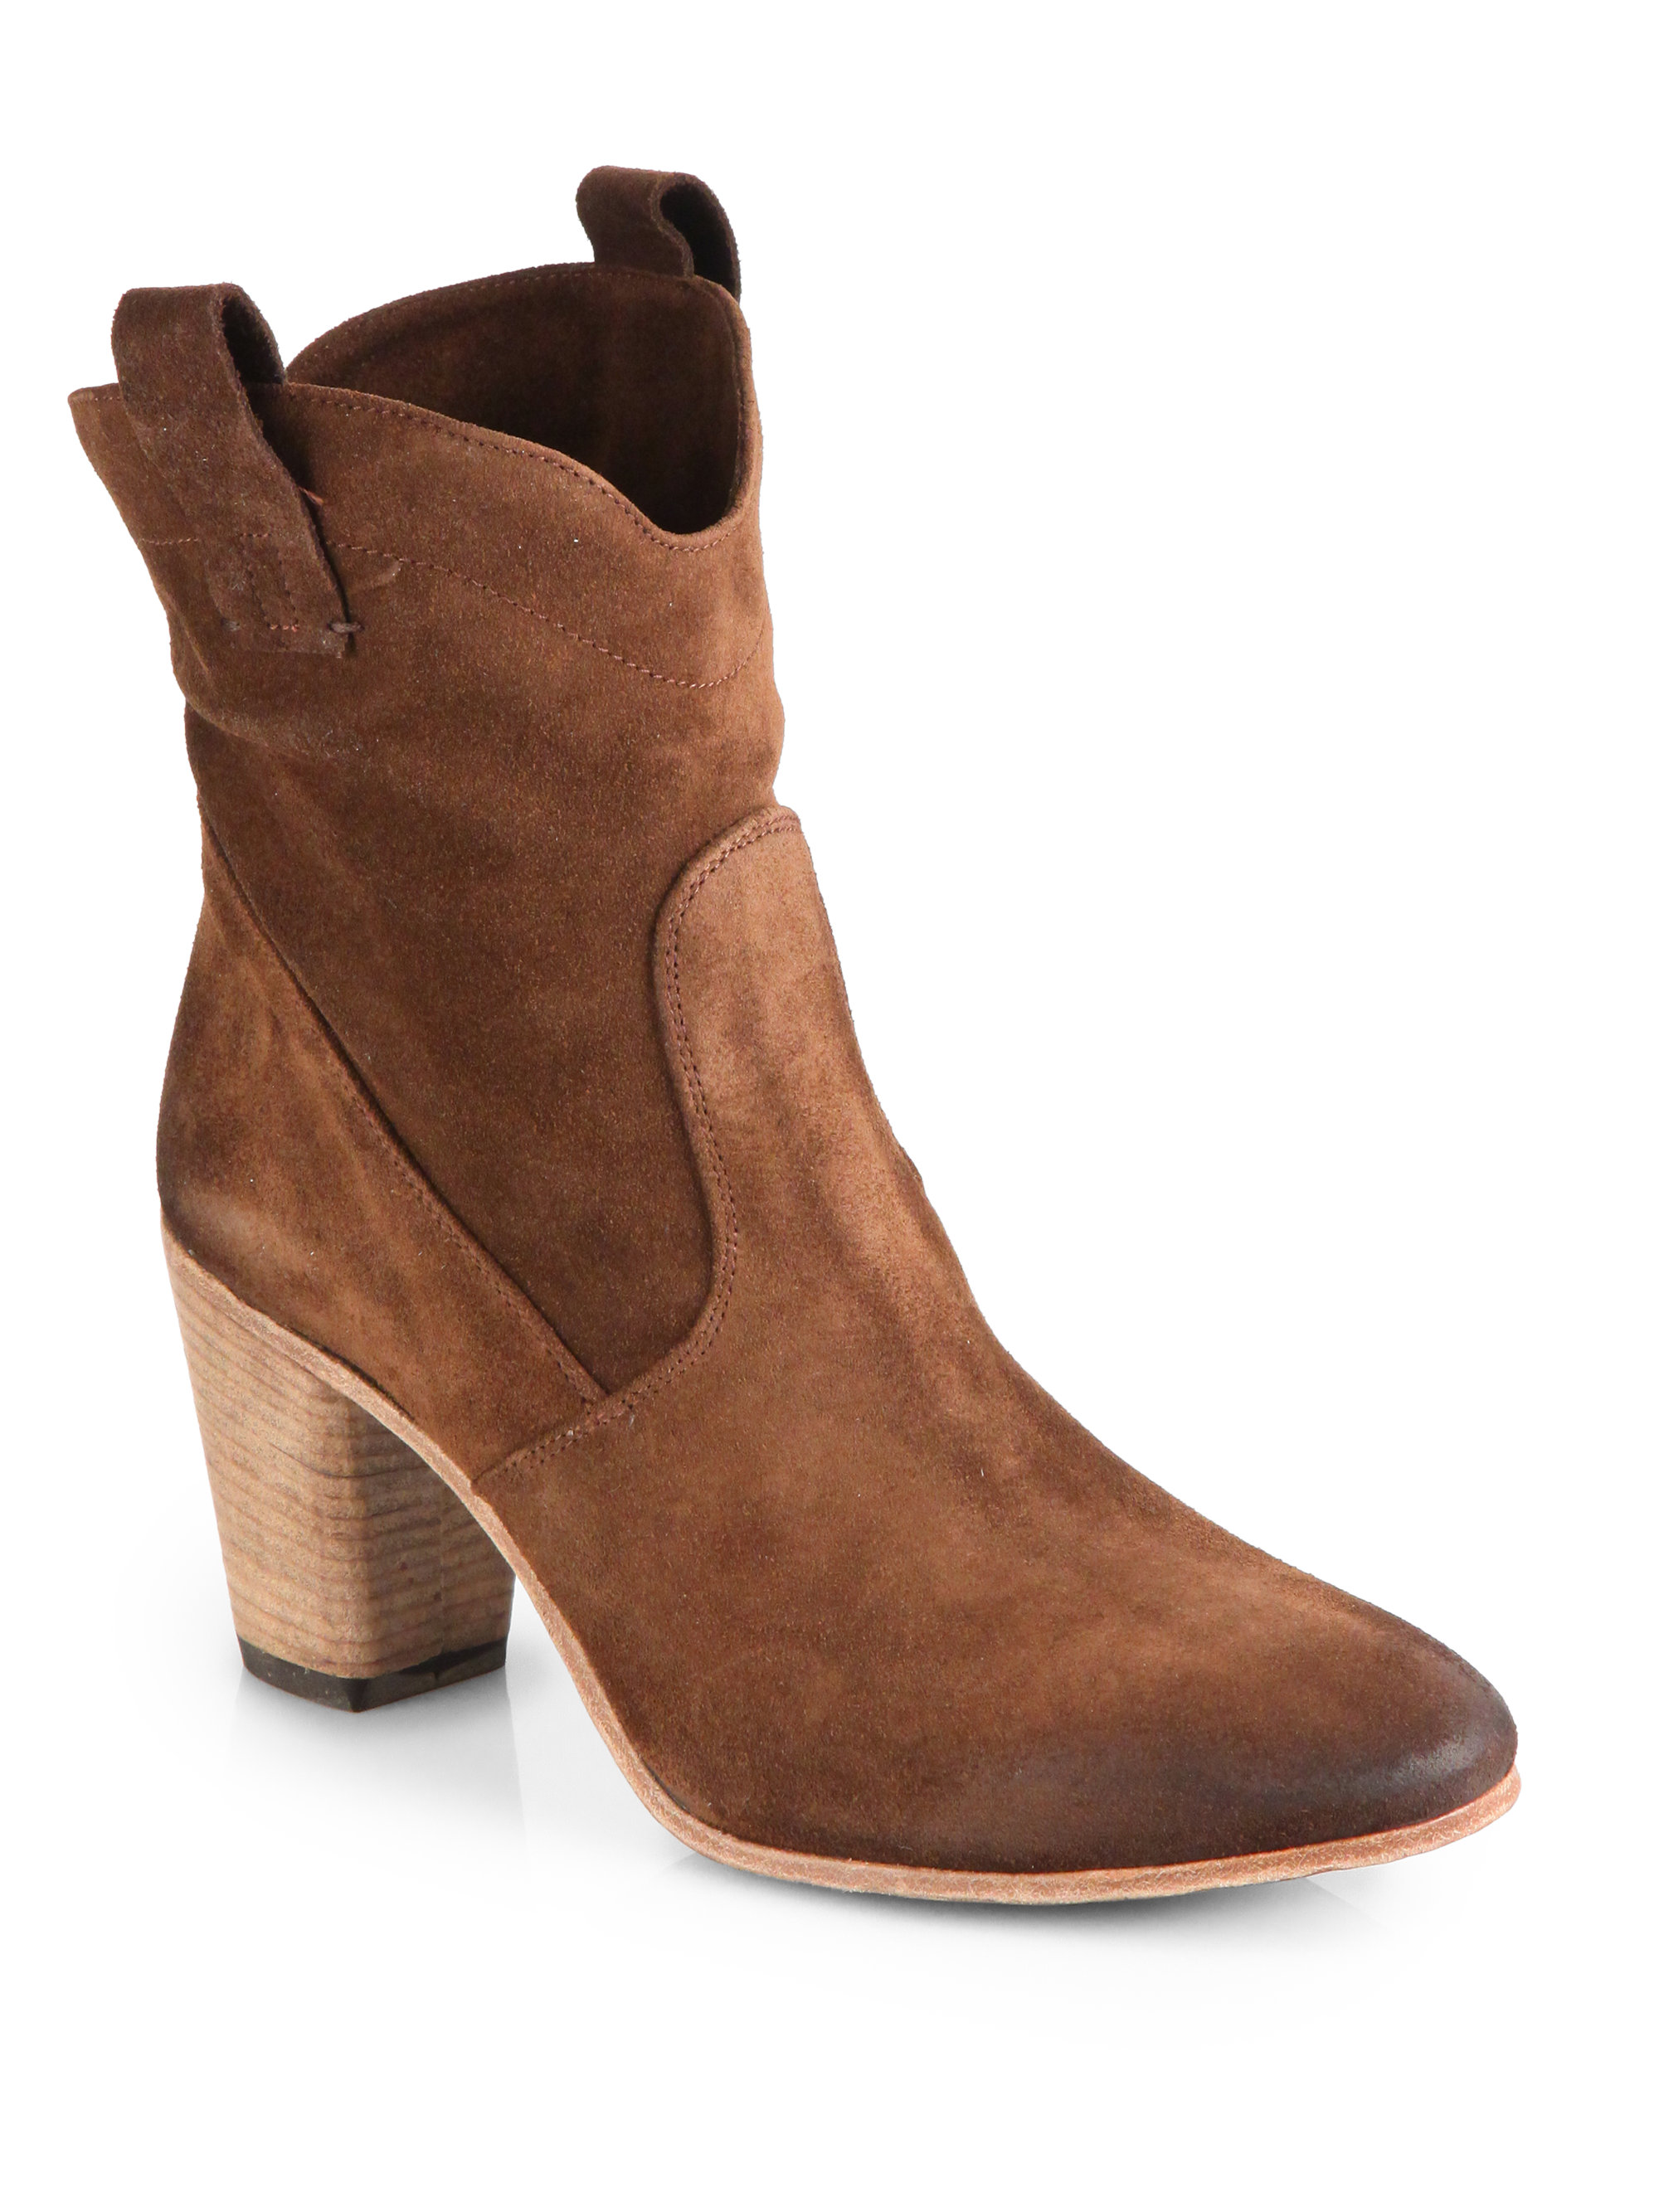 alberto fermani chiara suede ankle boots in brown lyst